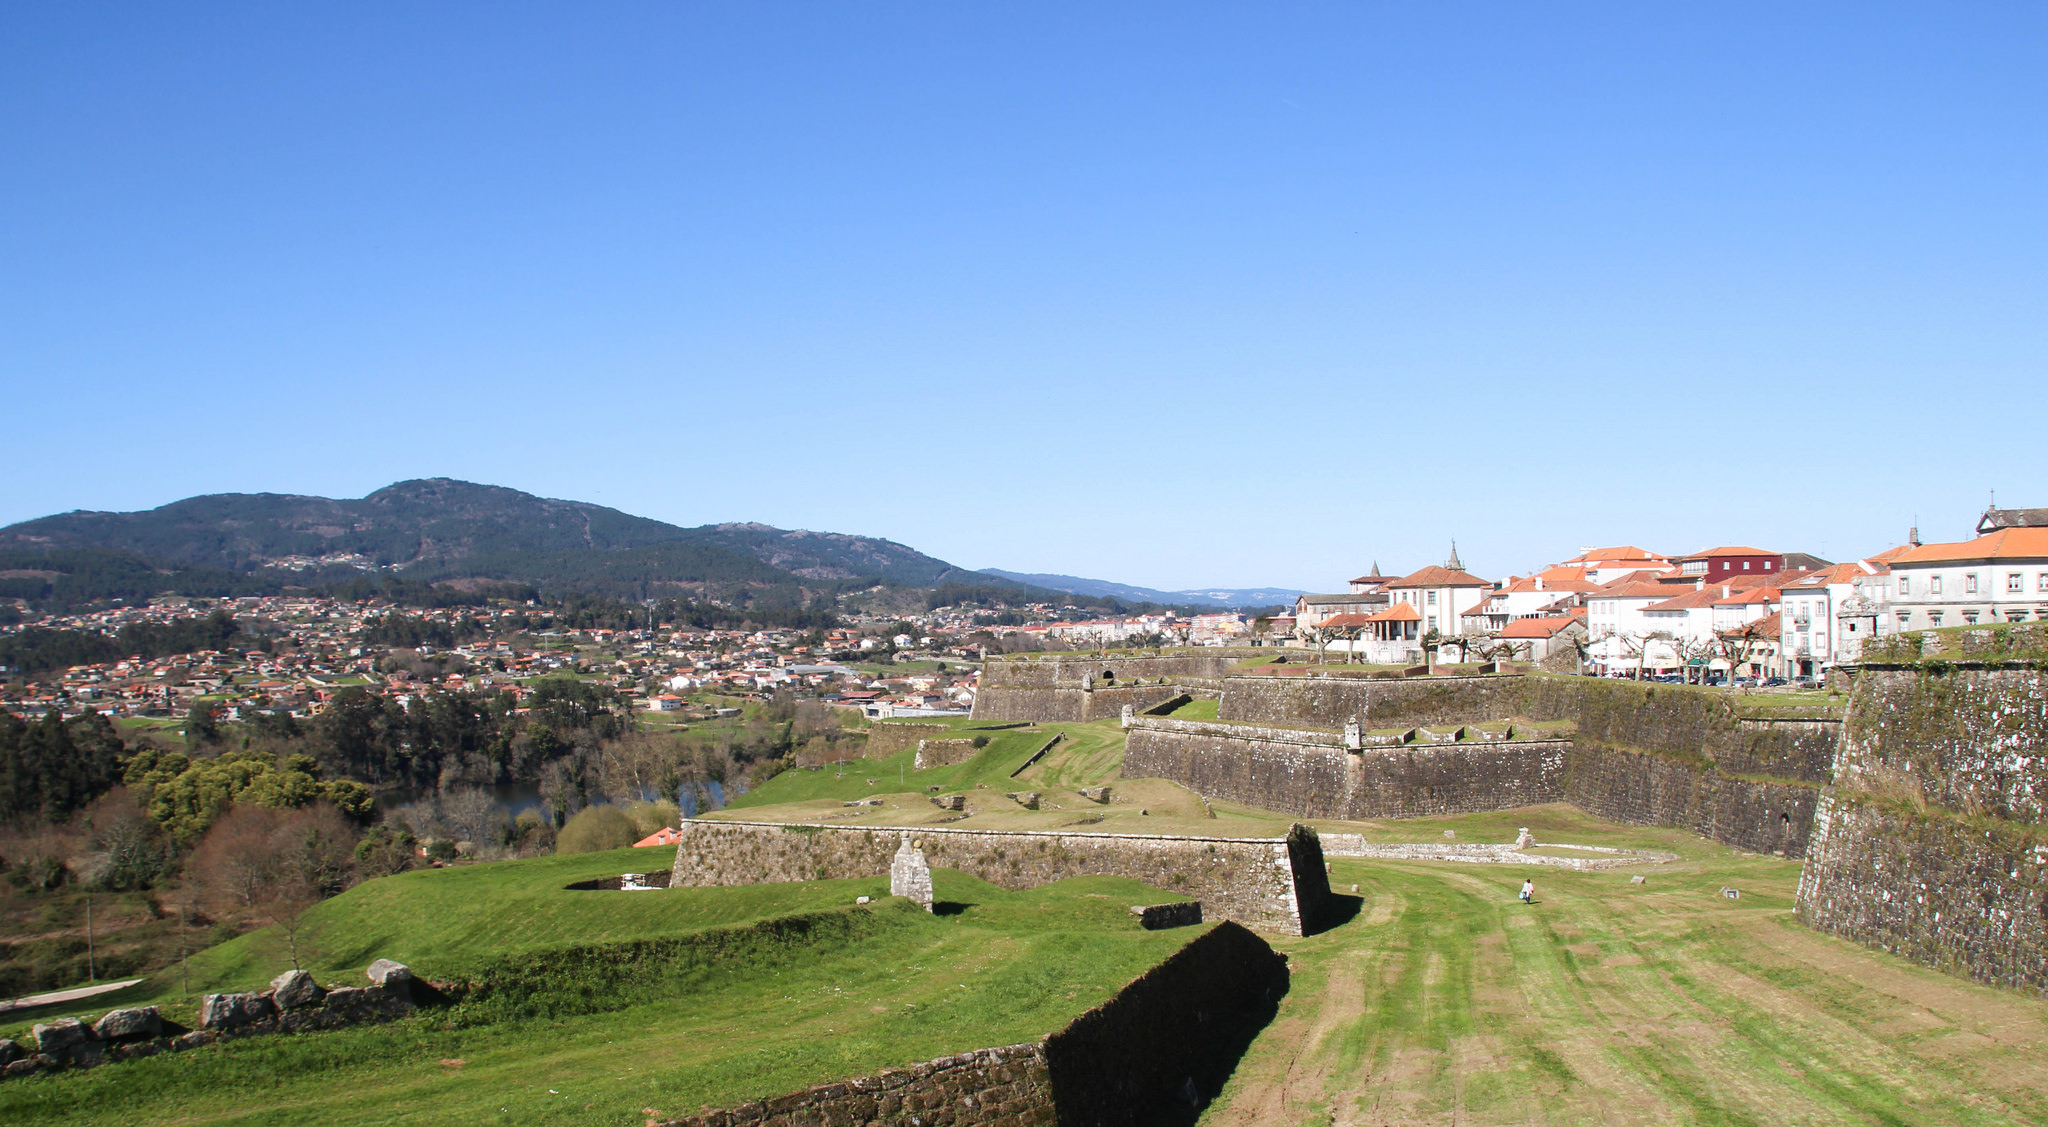 Murallas de Valença do Minho https://www.flickr.com/photos/edumariz/ / Flickr/Creative commons